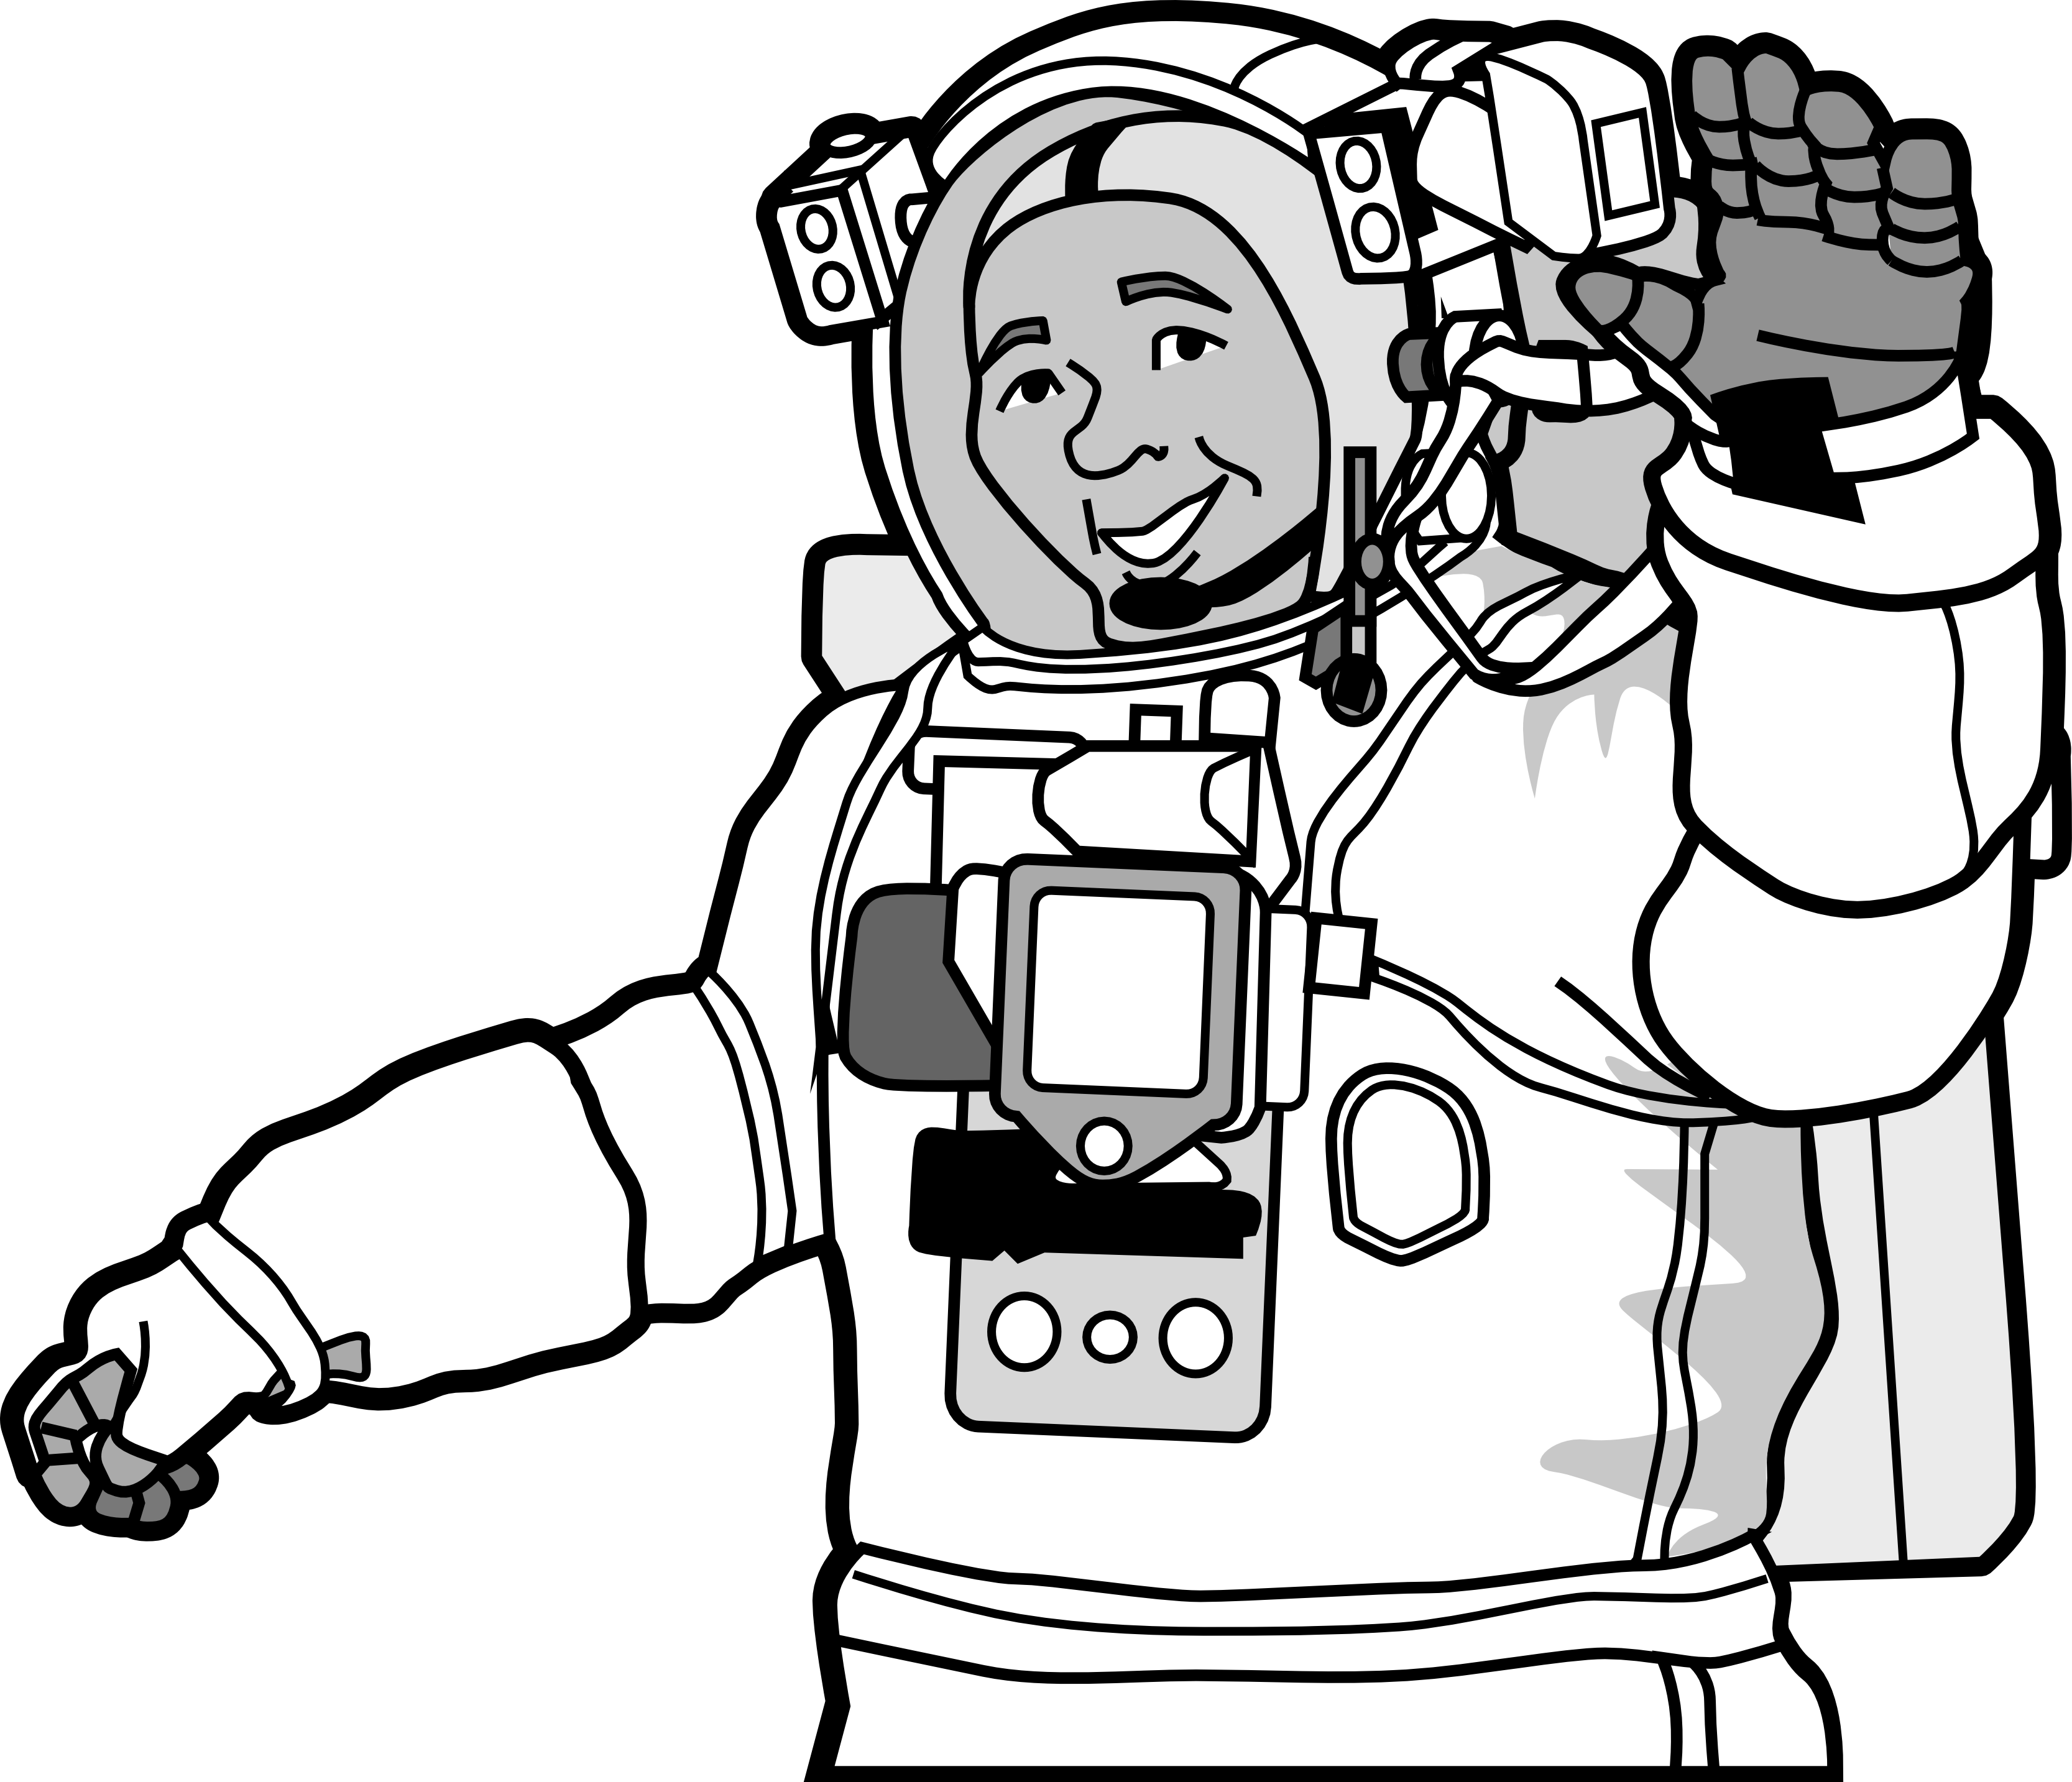 Astronaut clipart white and black clipart royalty free stock Free Astronaut Clipart Black And White, Download Free Clip Art, Free ... clipart royalty free stock